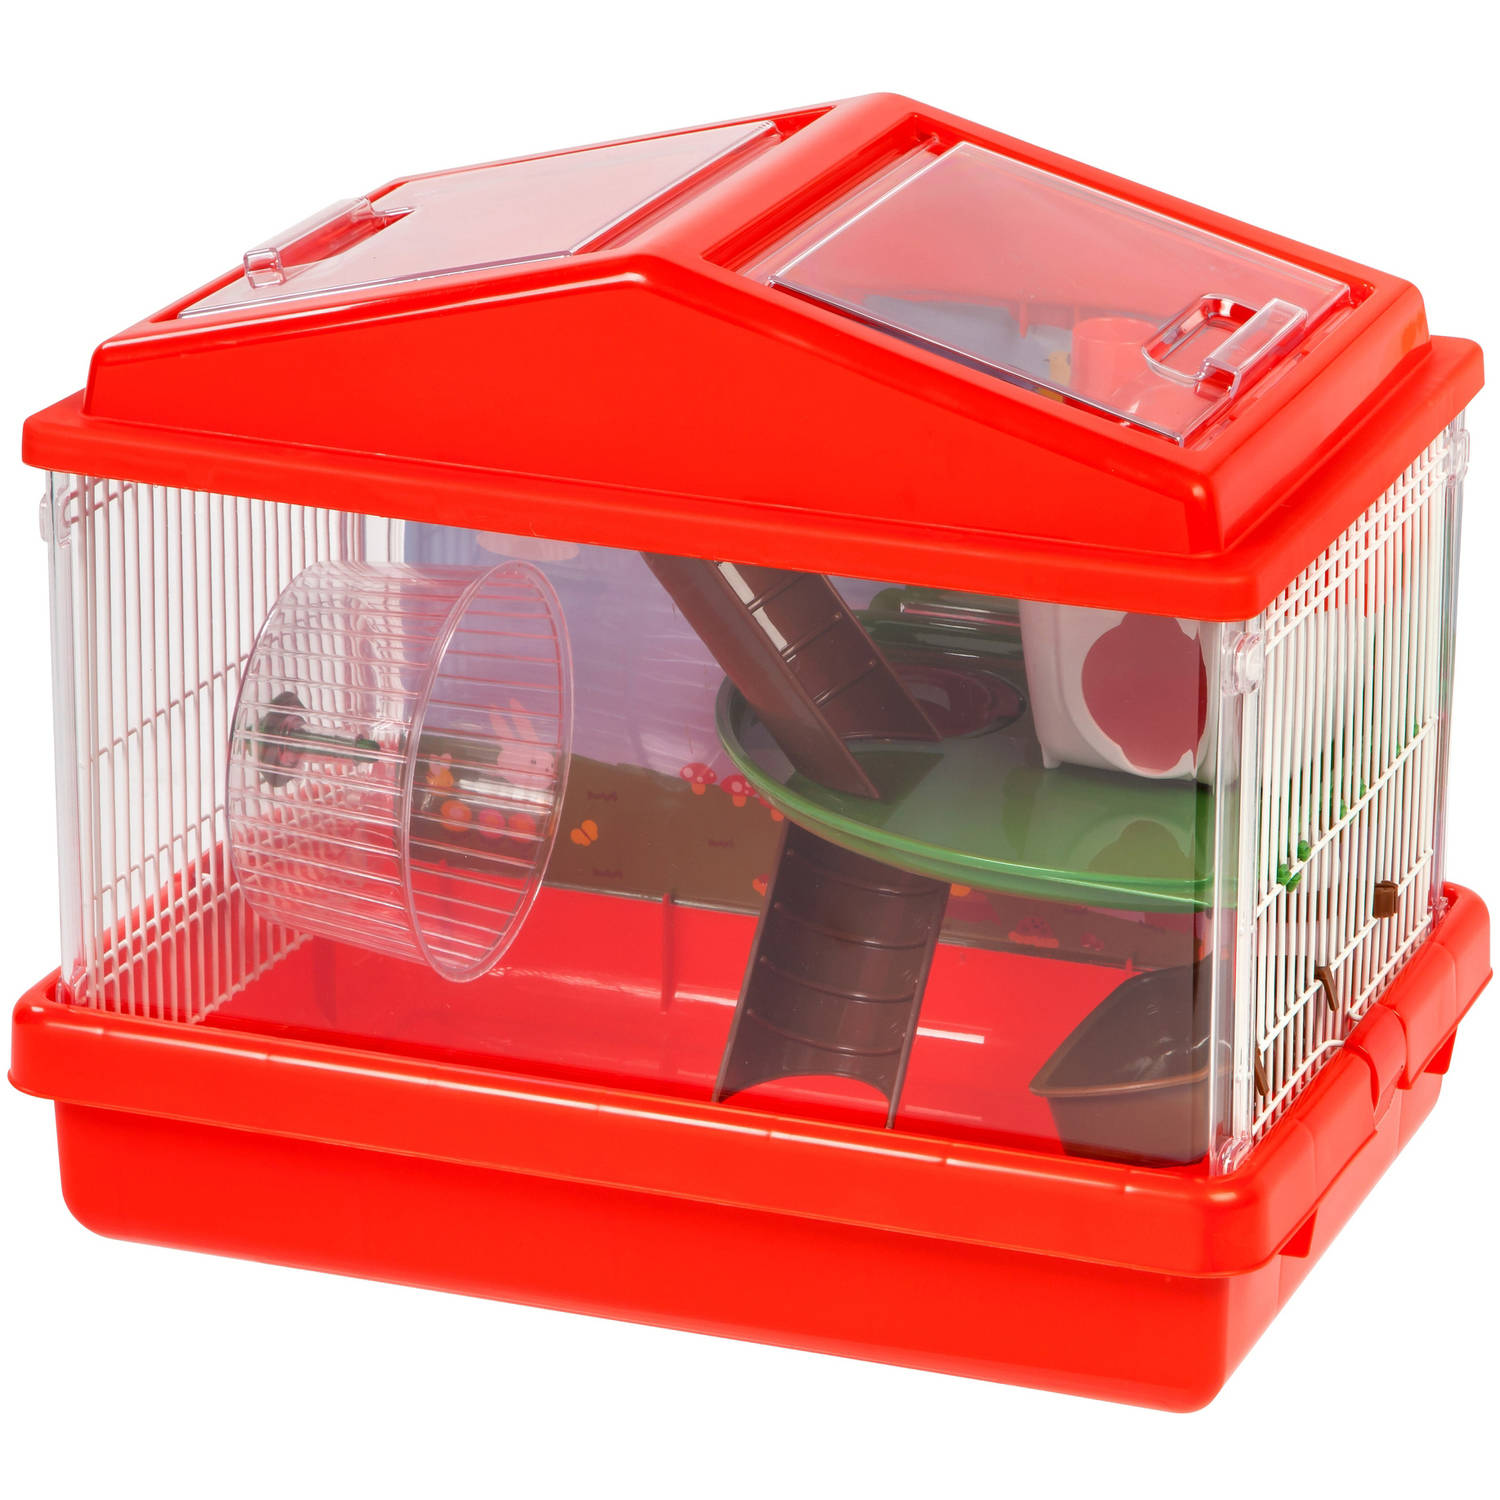 IRIS 2-Tier Hamster Cage, Red